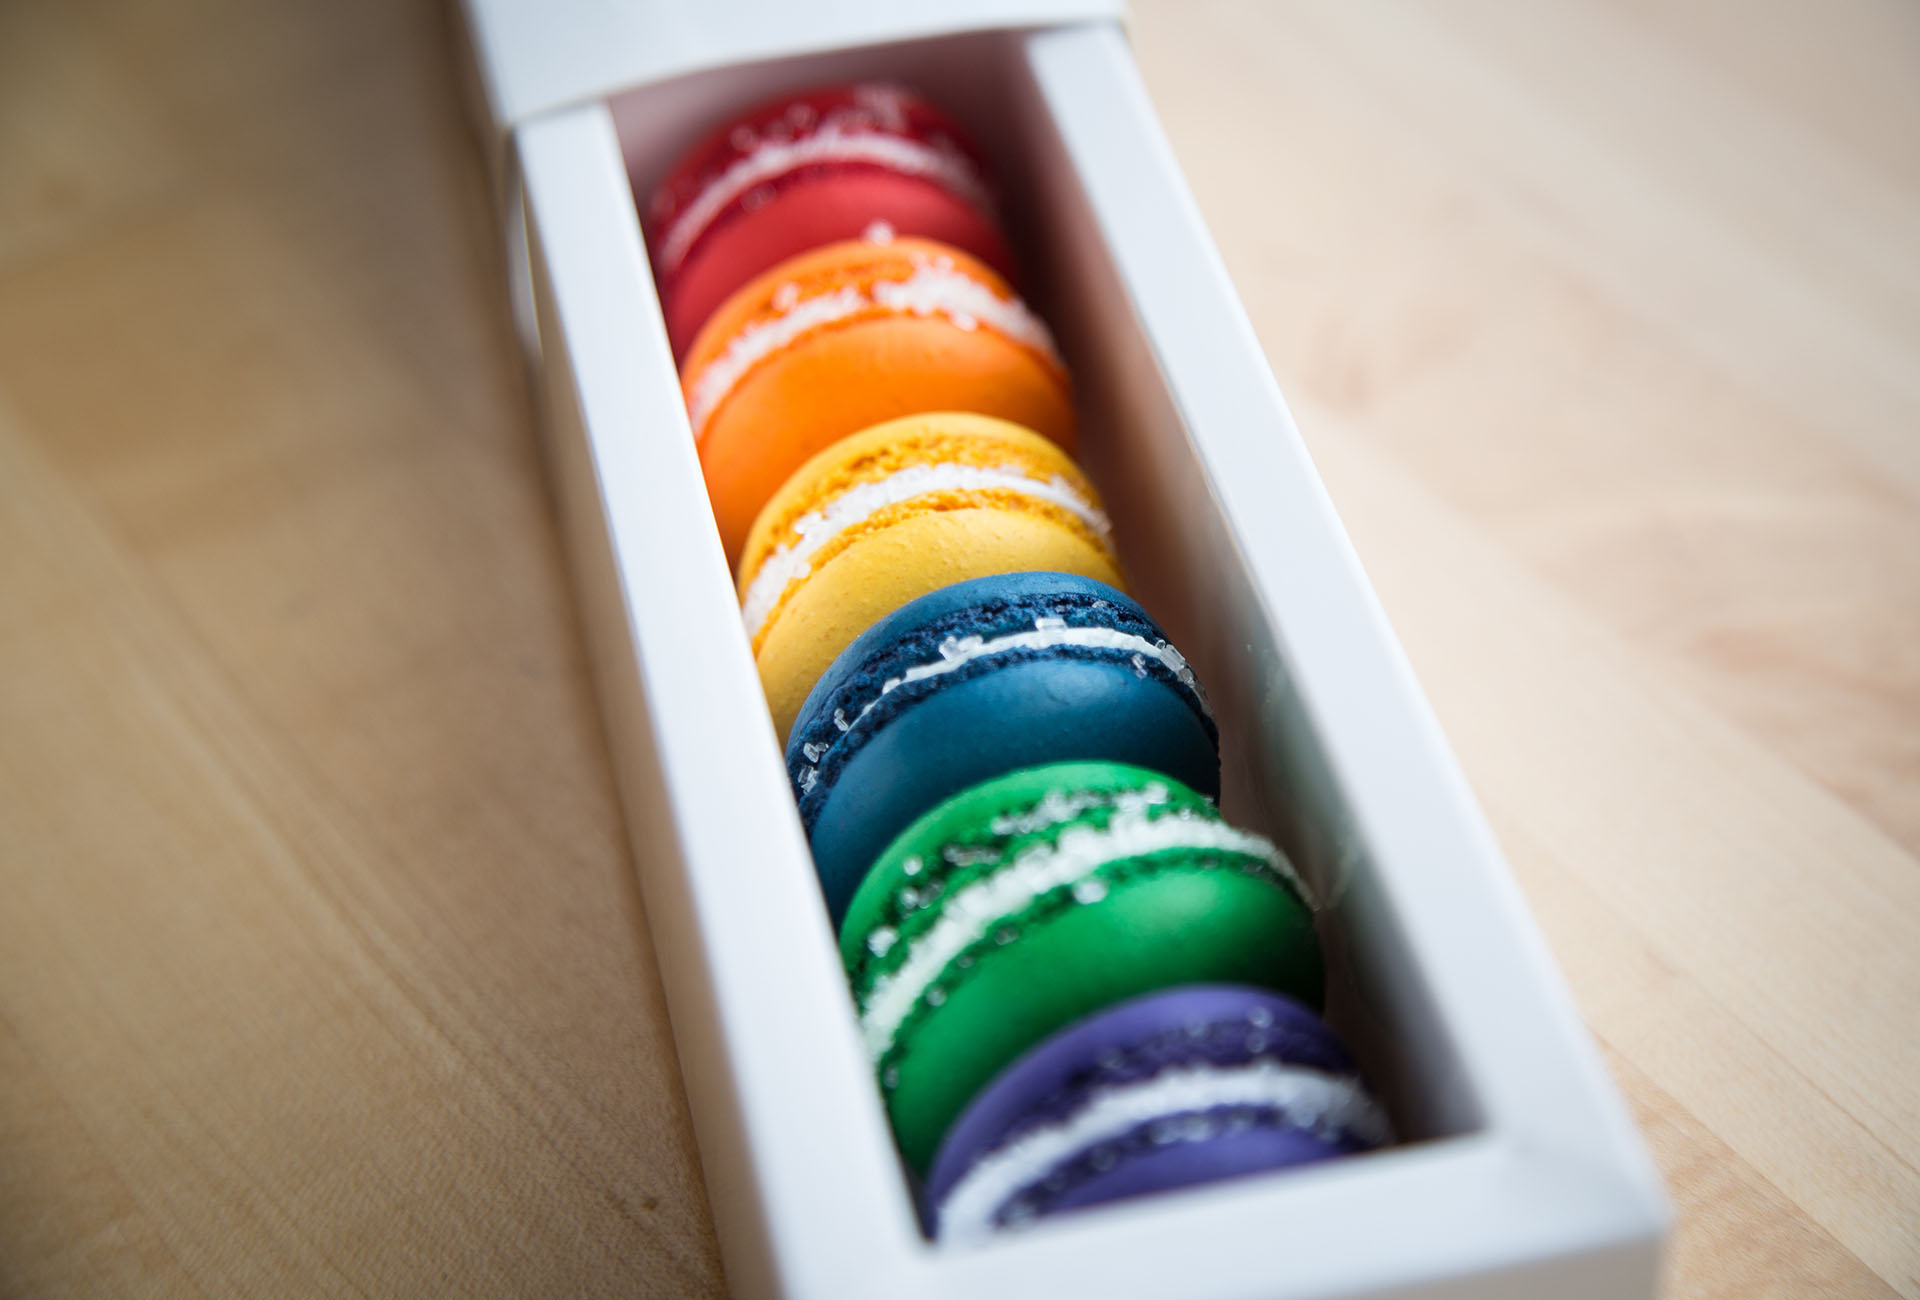 The Pride-themed Macarons are available to order online and come in a case of six.